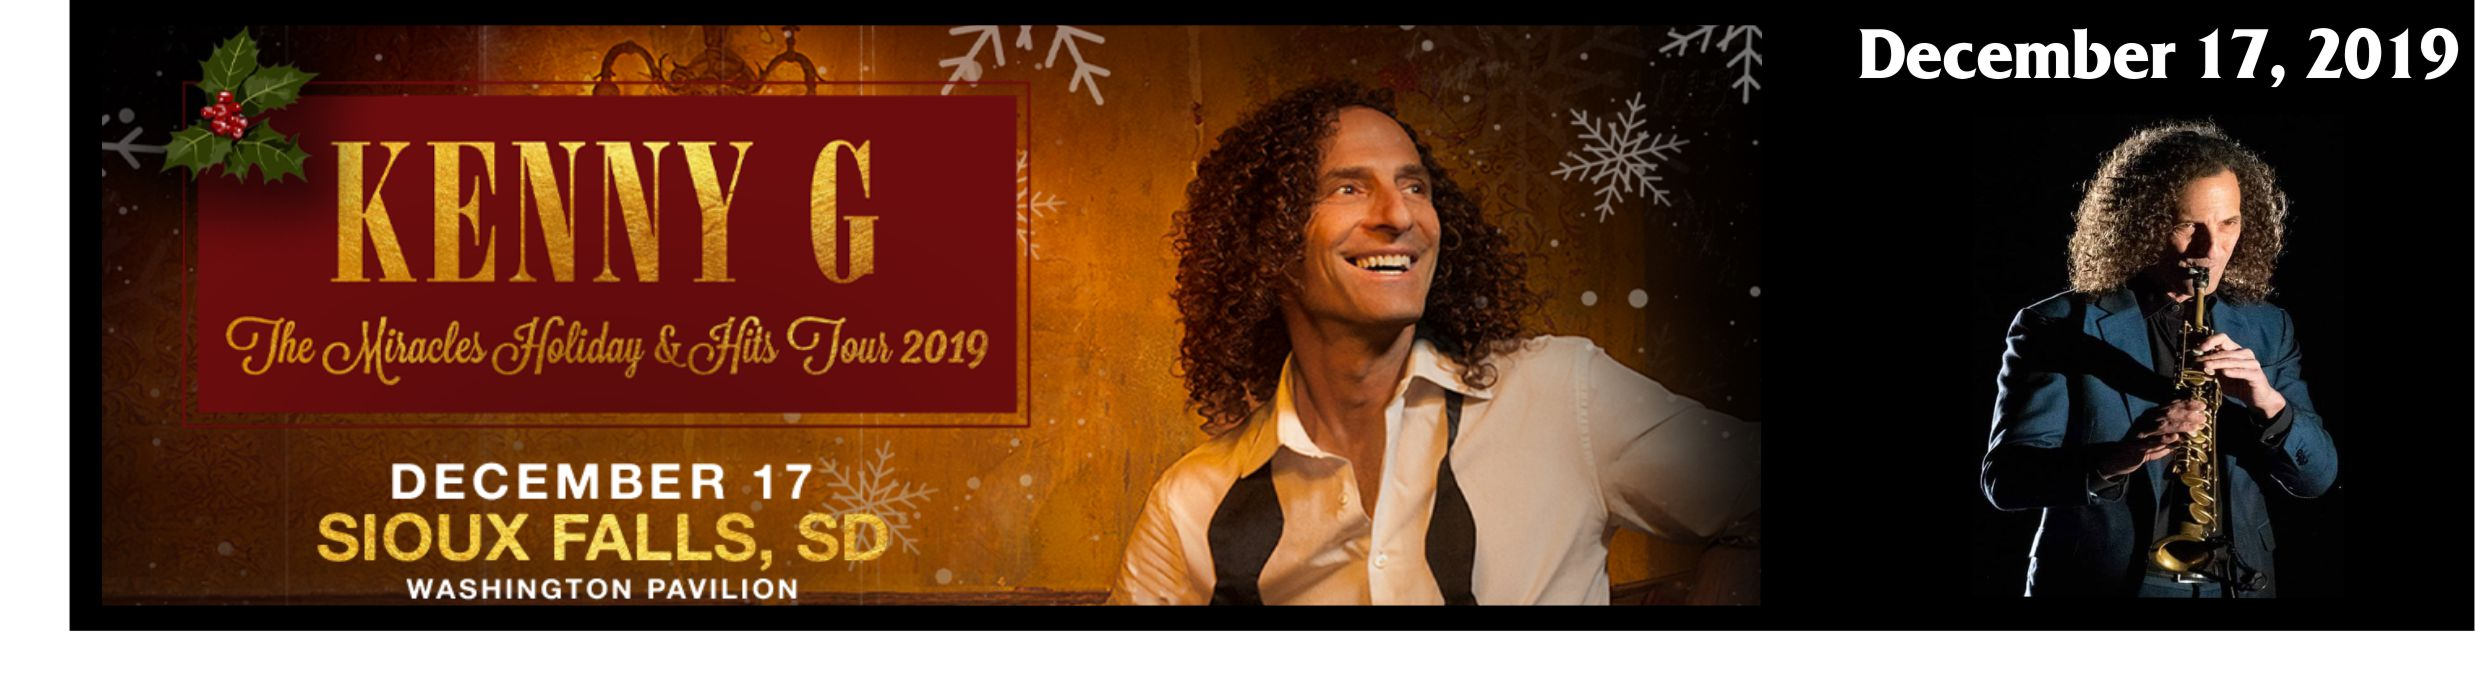 Kenny G Christmas.Kenny G The Miracles Holiday Hits Tour 2019 Montam